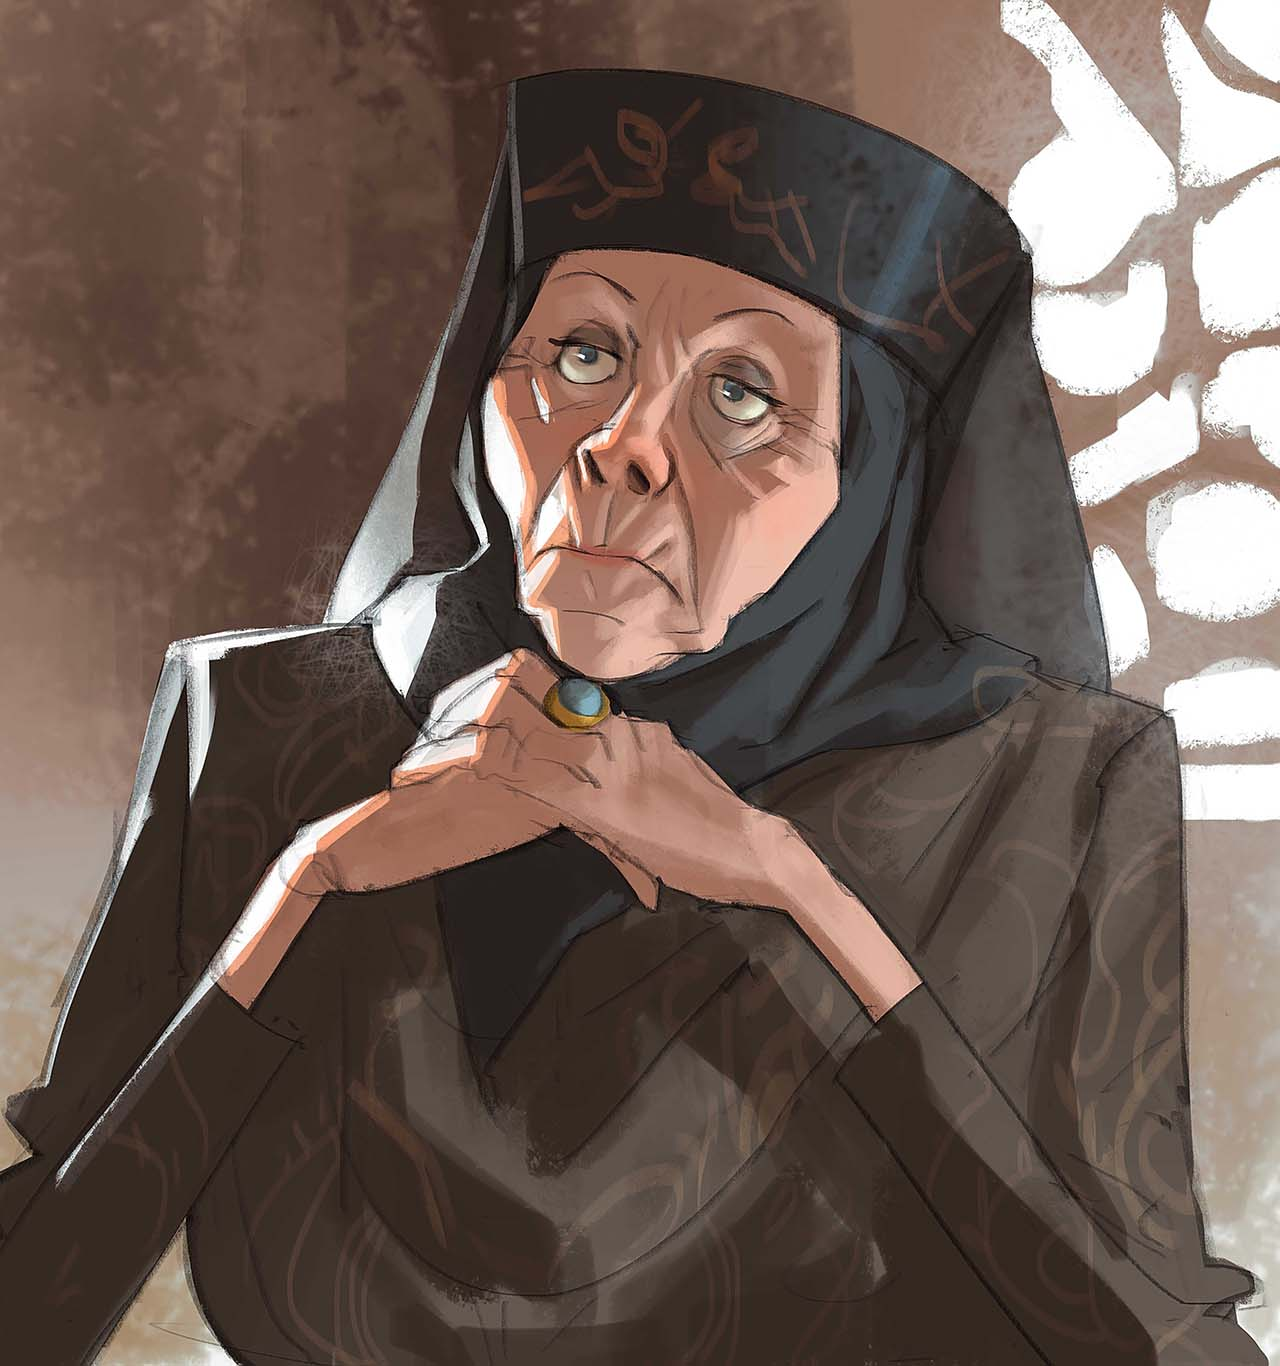 Artist Creates Unique Character Arts From Game Of Thrones – Lady Olenna Character Art By Ramón Nuñez